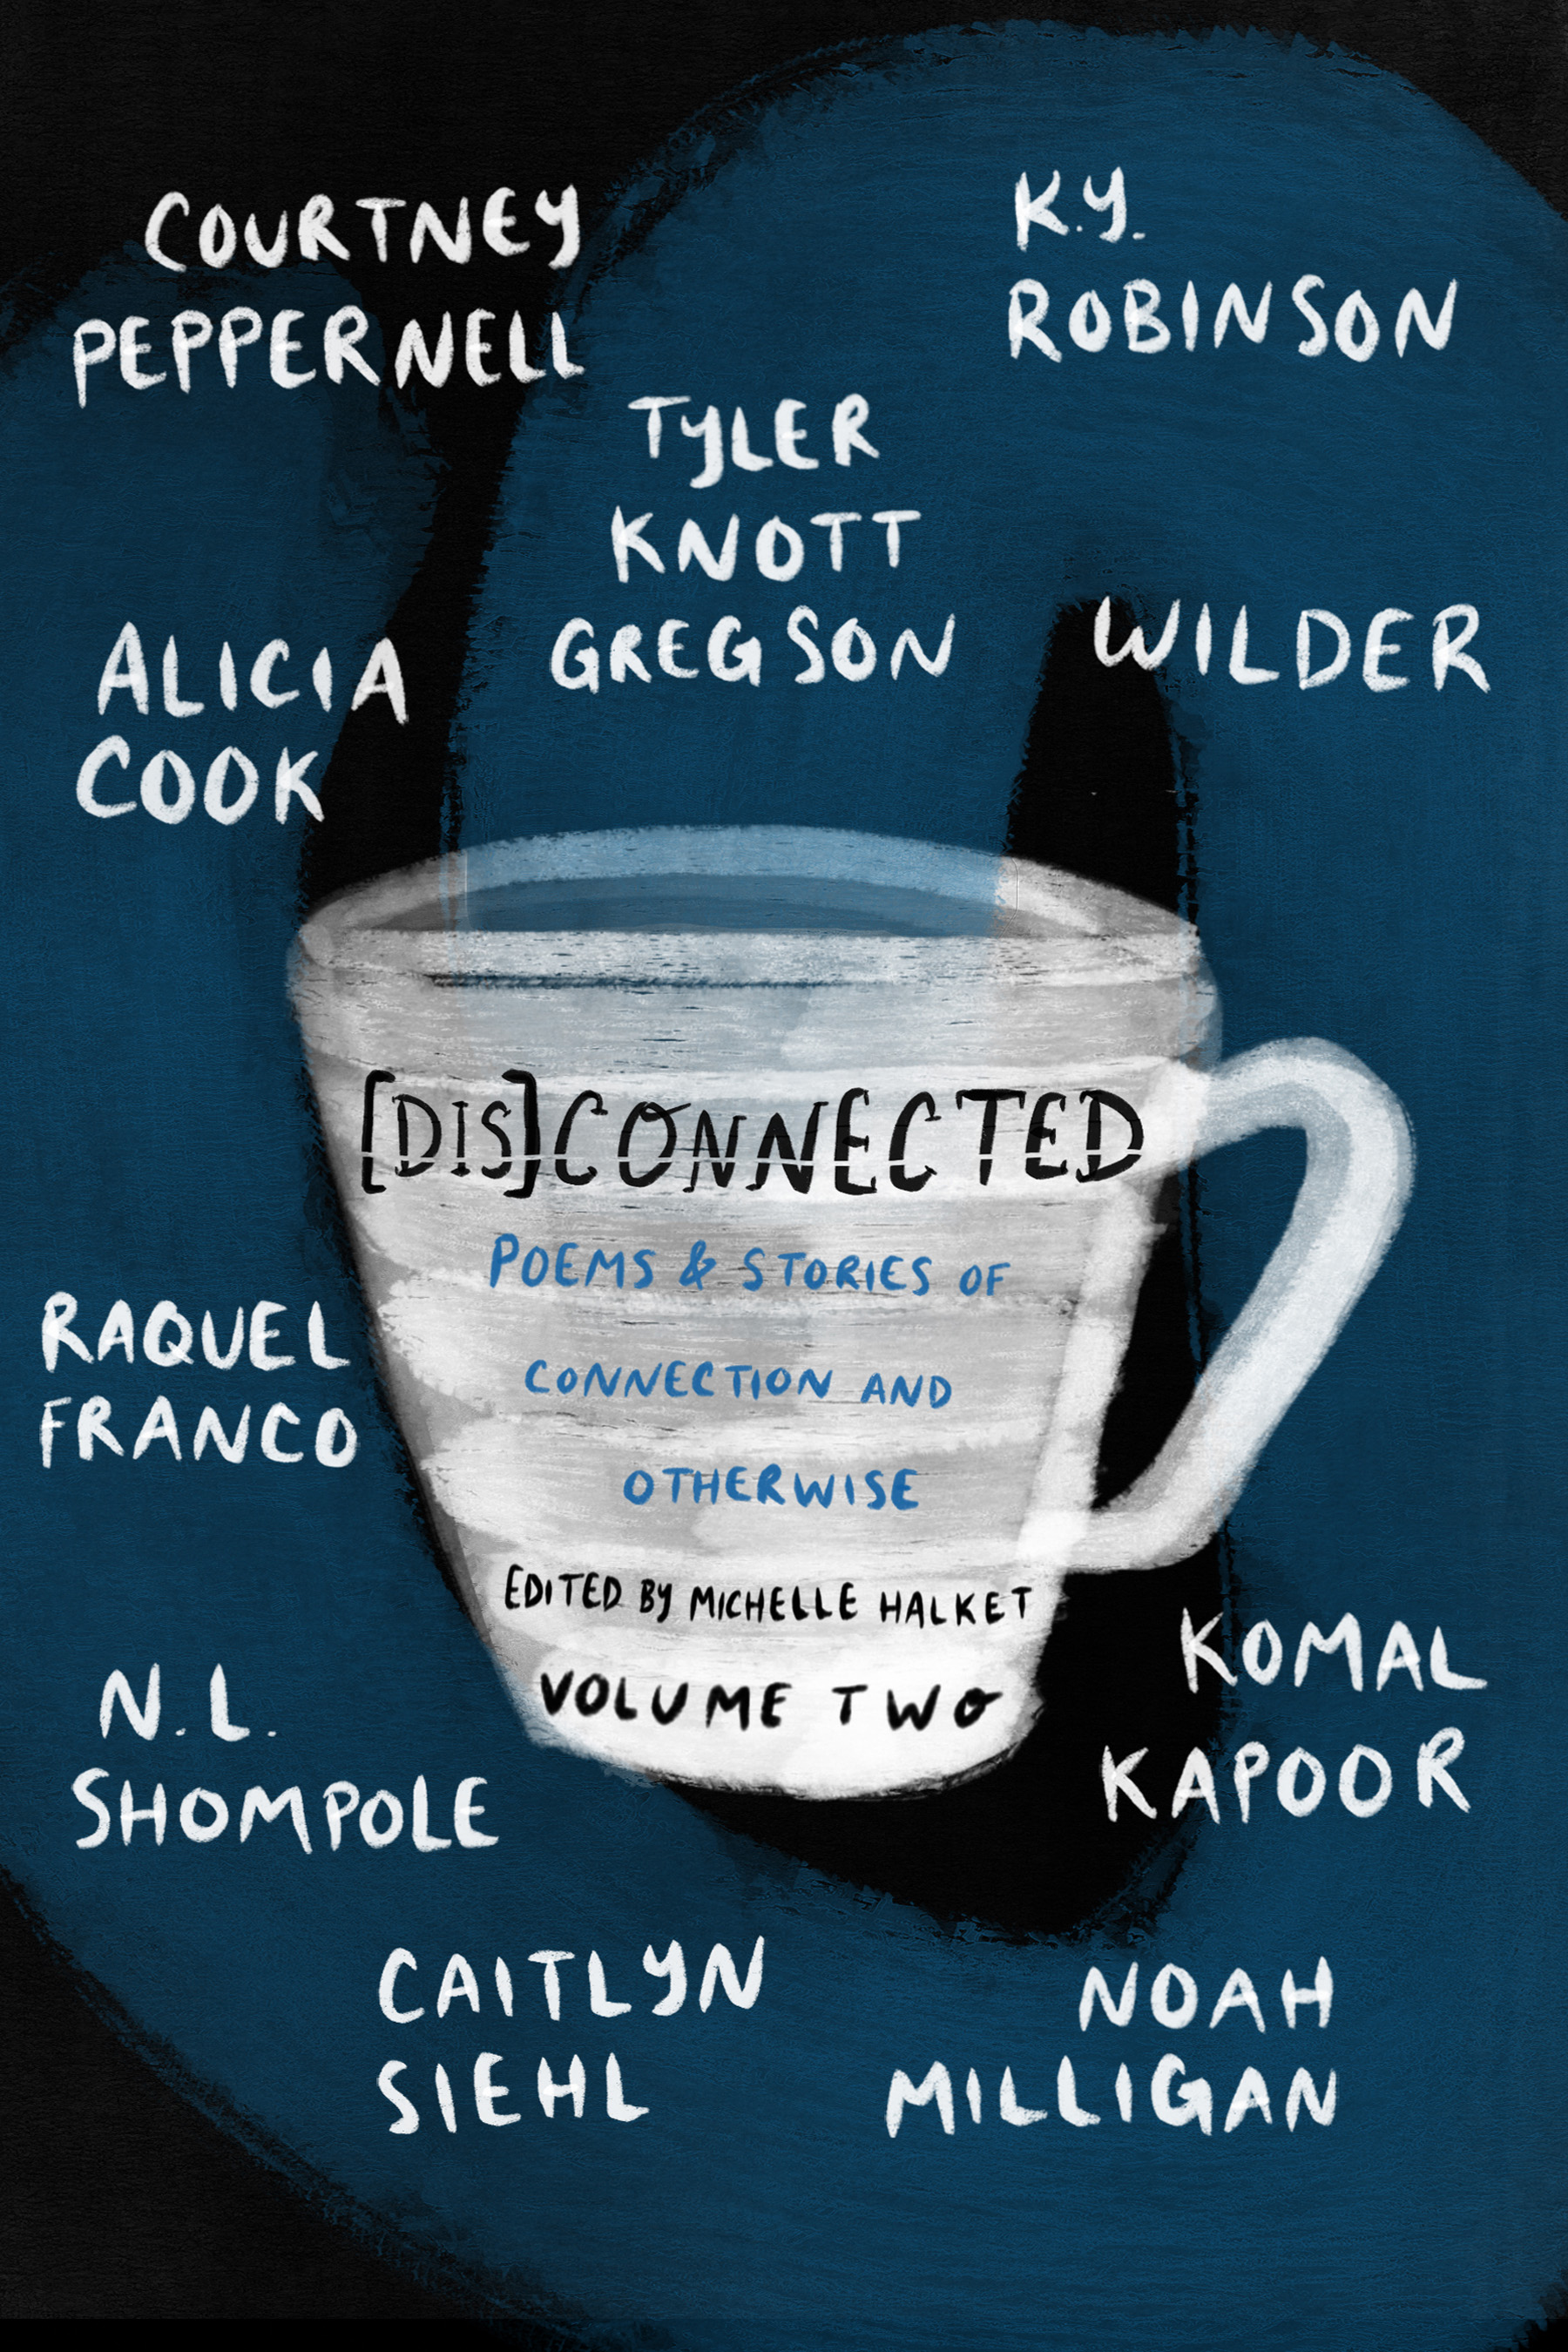 [Dis]Connected: Poems & Stories of Connection and Otherwise ([Dis]Connected #2)